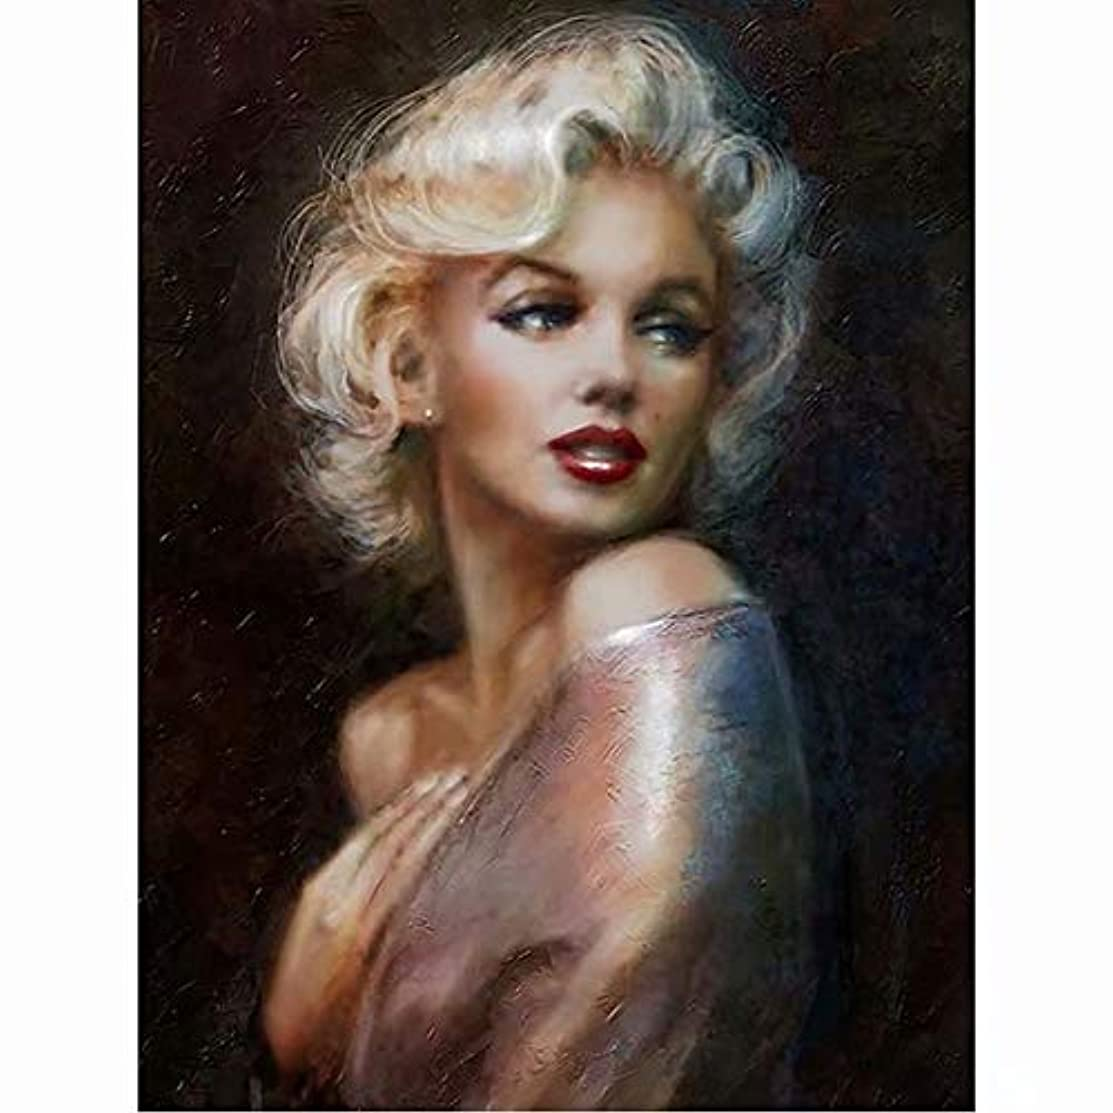 Flowerbeads Full DIY 5D Diamond Painting Kit, Marilyn Monroe Rhinestone Embroidery Cross Stitch Painting Fun for Kids and Adults